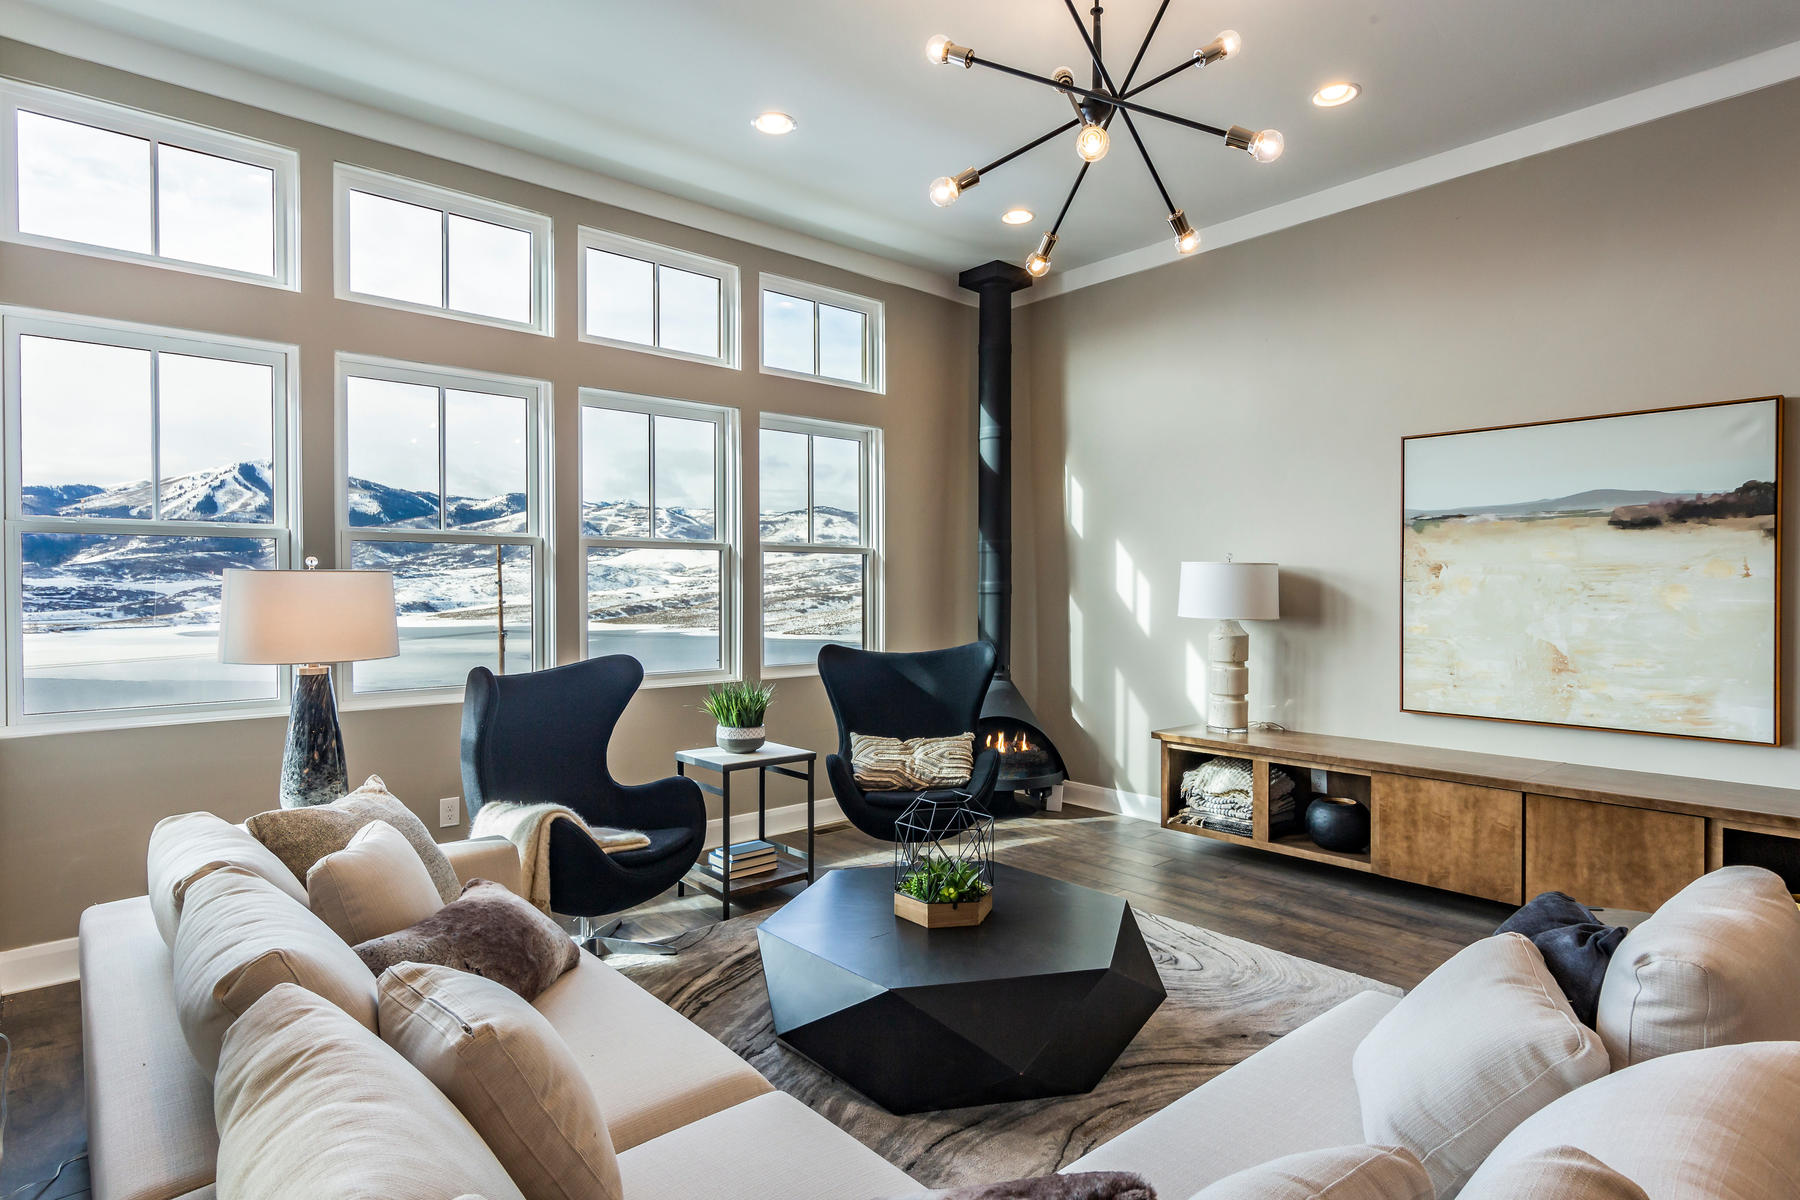 townhouses vì Bán tại New Lakefront Community with Views of Deer Valley Resort & Jordanelle Reservoir 392 E Overlook Loop, Lot 32, Hideout Canyon, Utah 84036 Hoa Kỳ